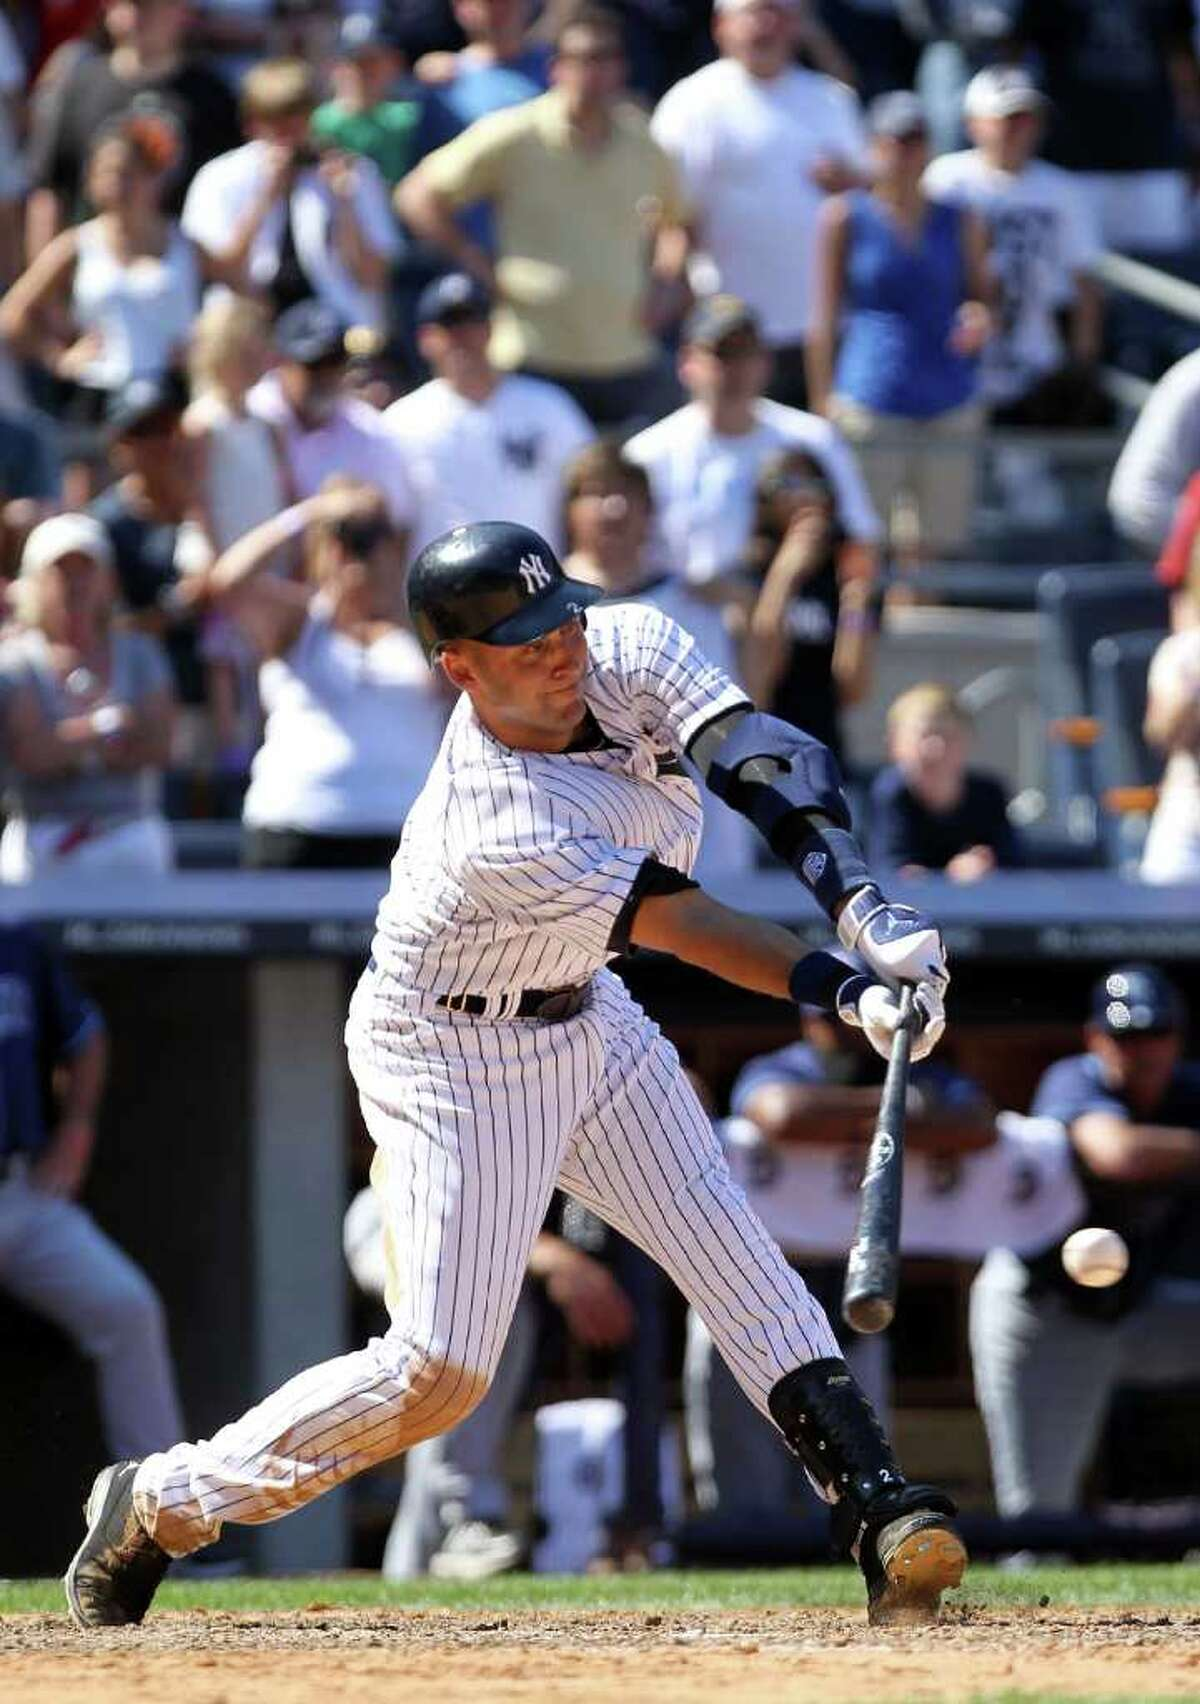 NEW YORK, NY - JULY 09: Derek Jeter #2 of the New York Yankees hits an RBI game winning single in the eighth inning against the Tampa Bay Rays at Yankee Stadium on July 9, 2011 in the Bronx borough of New York City. (Photo by Nick Laham/Getty Images)